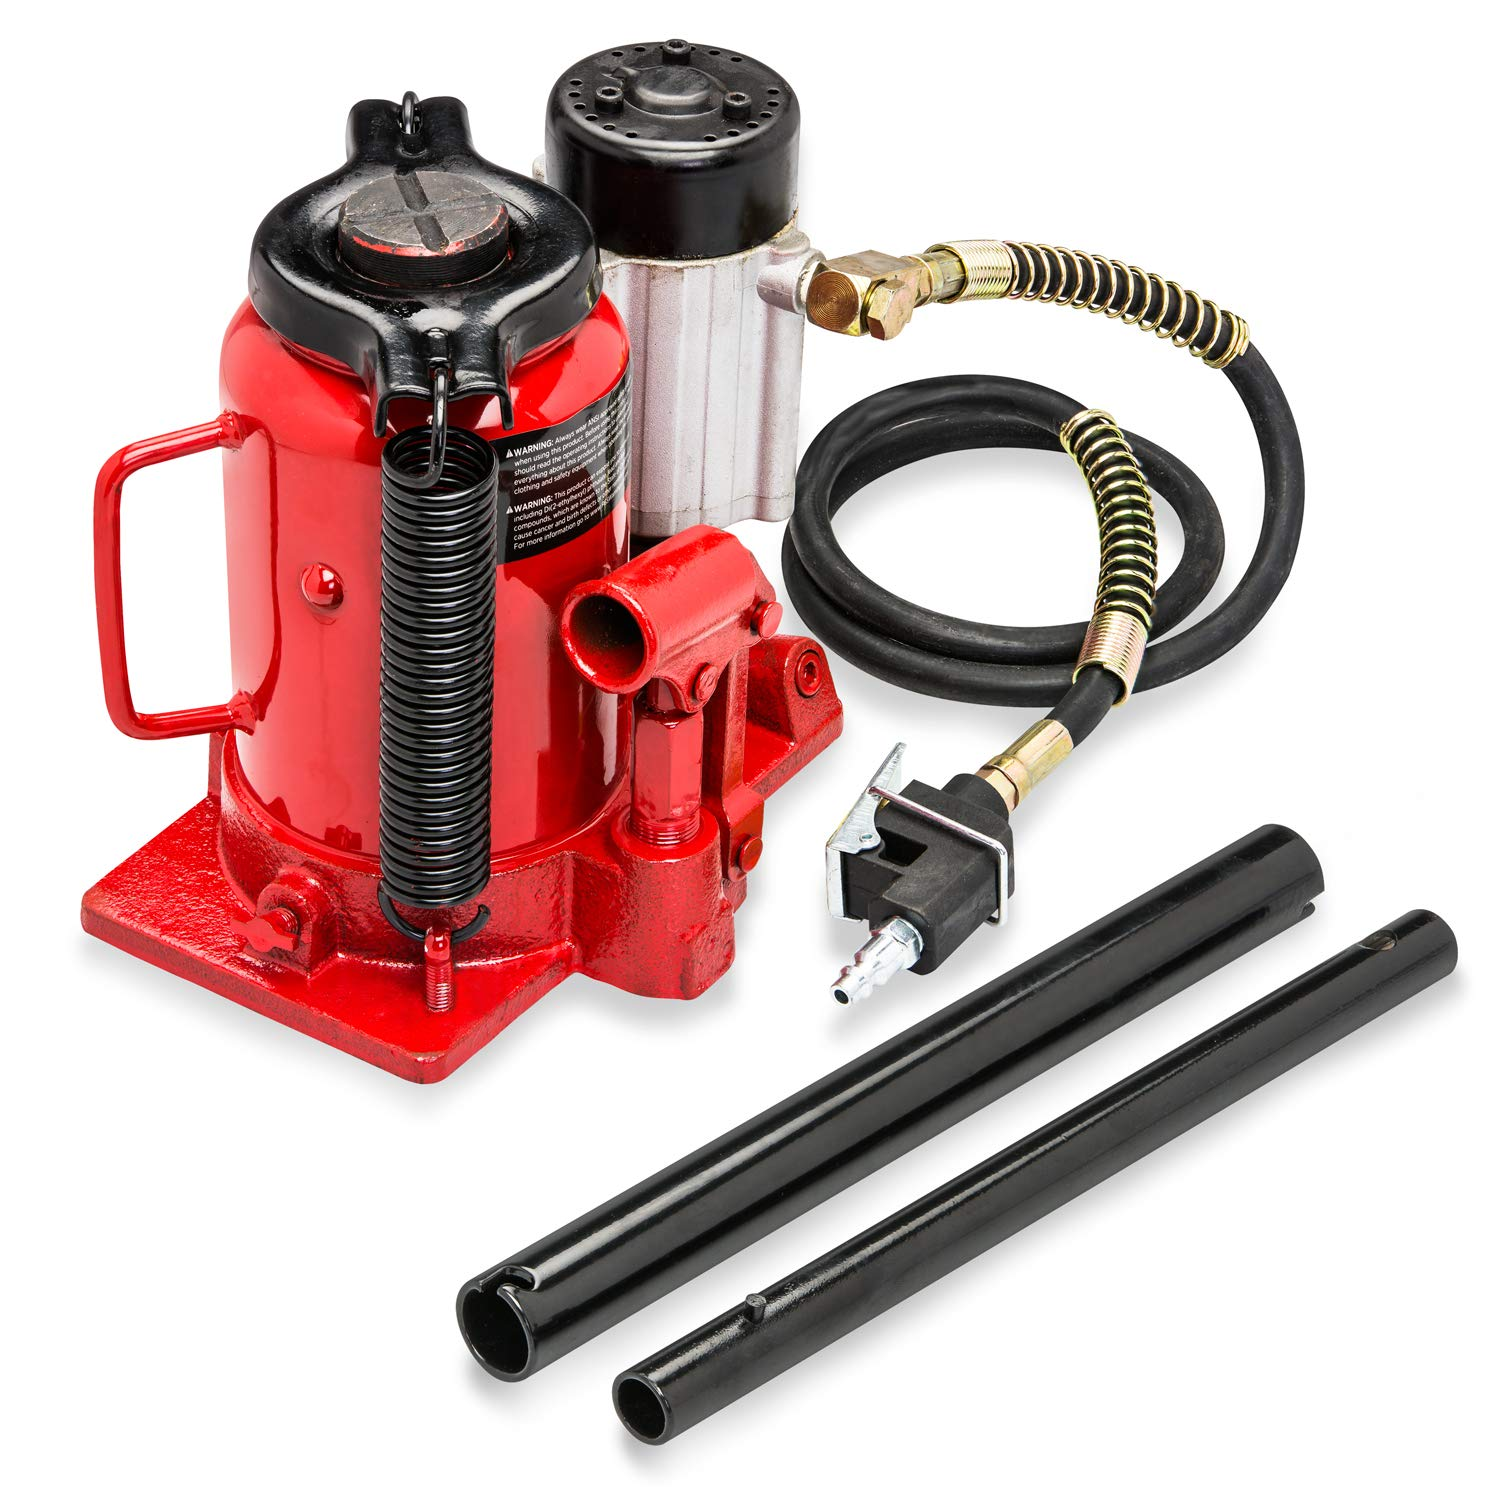 20 Tons Tooluxe 31010L Low Profile Air Hydraulic Manual Bottle Jack